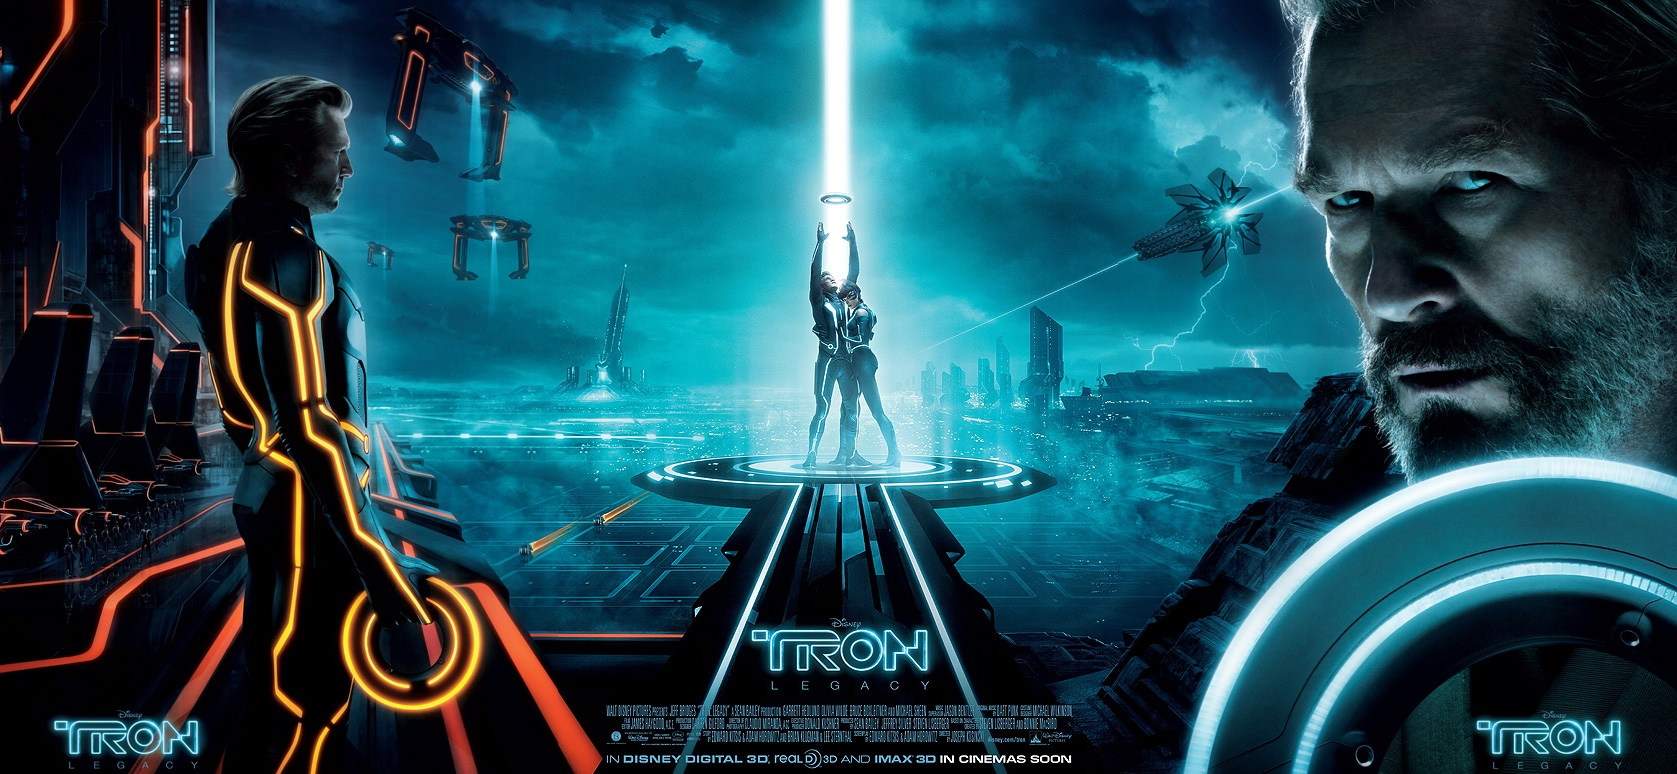 http://www.movieviral.com/wp-content/uploads/2010/11/tronlegacy-banner-large.jpg